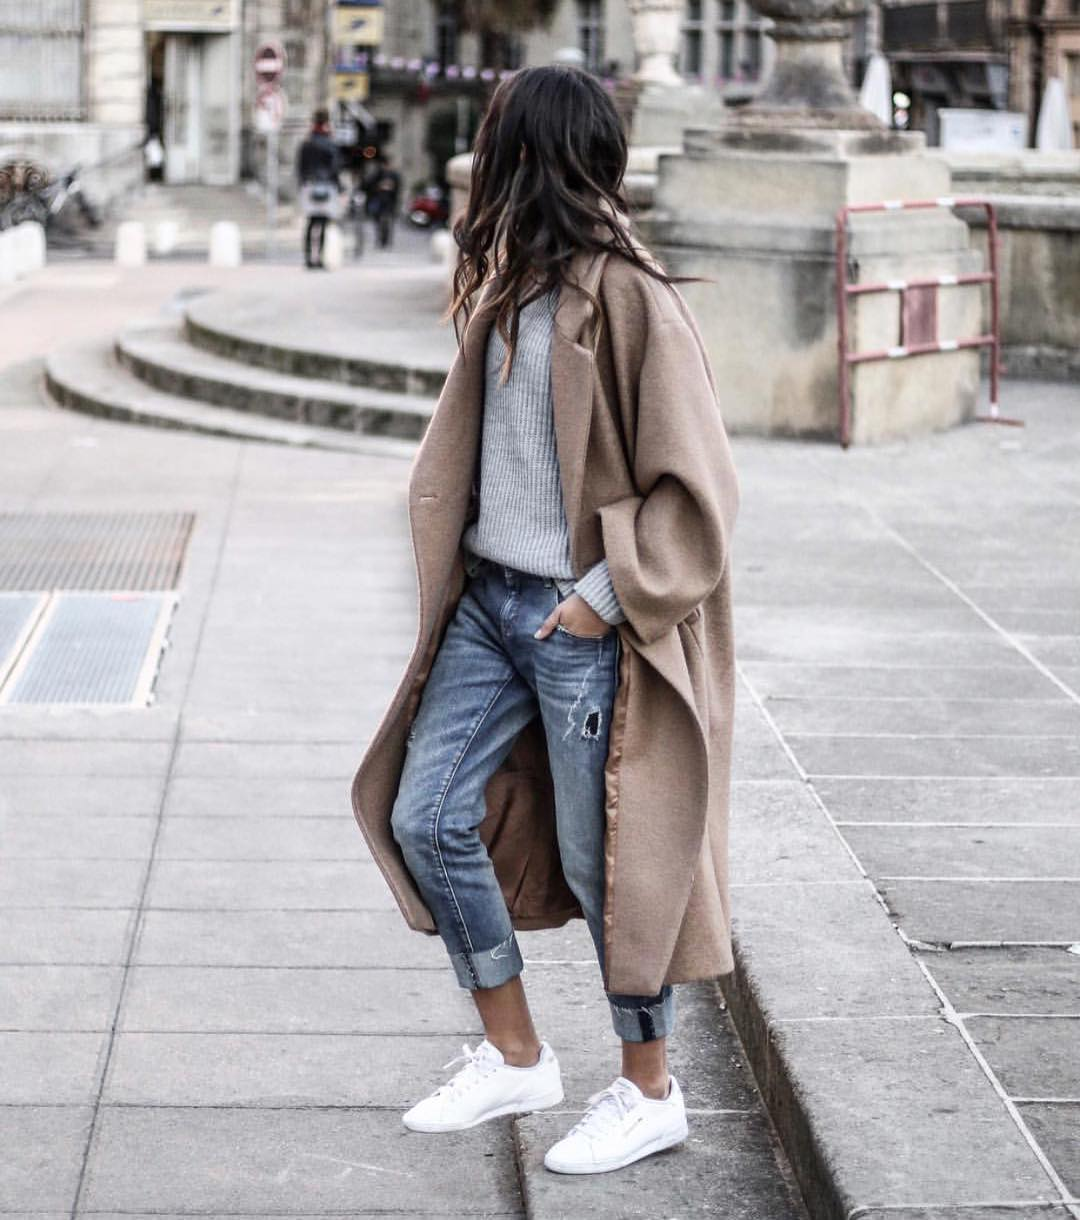 Oversized Grey Coat With Sweater Teamed With Cuffed Jeans And White Sneakers 2020